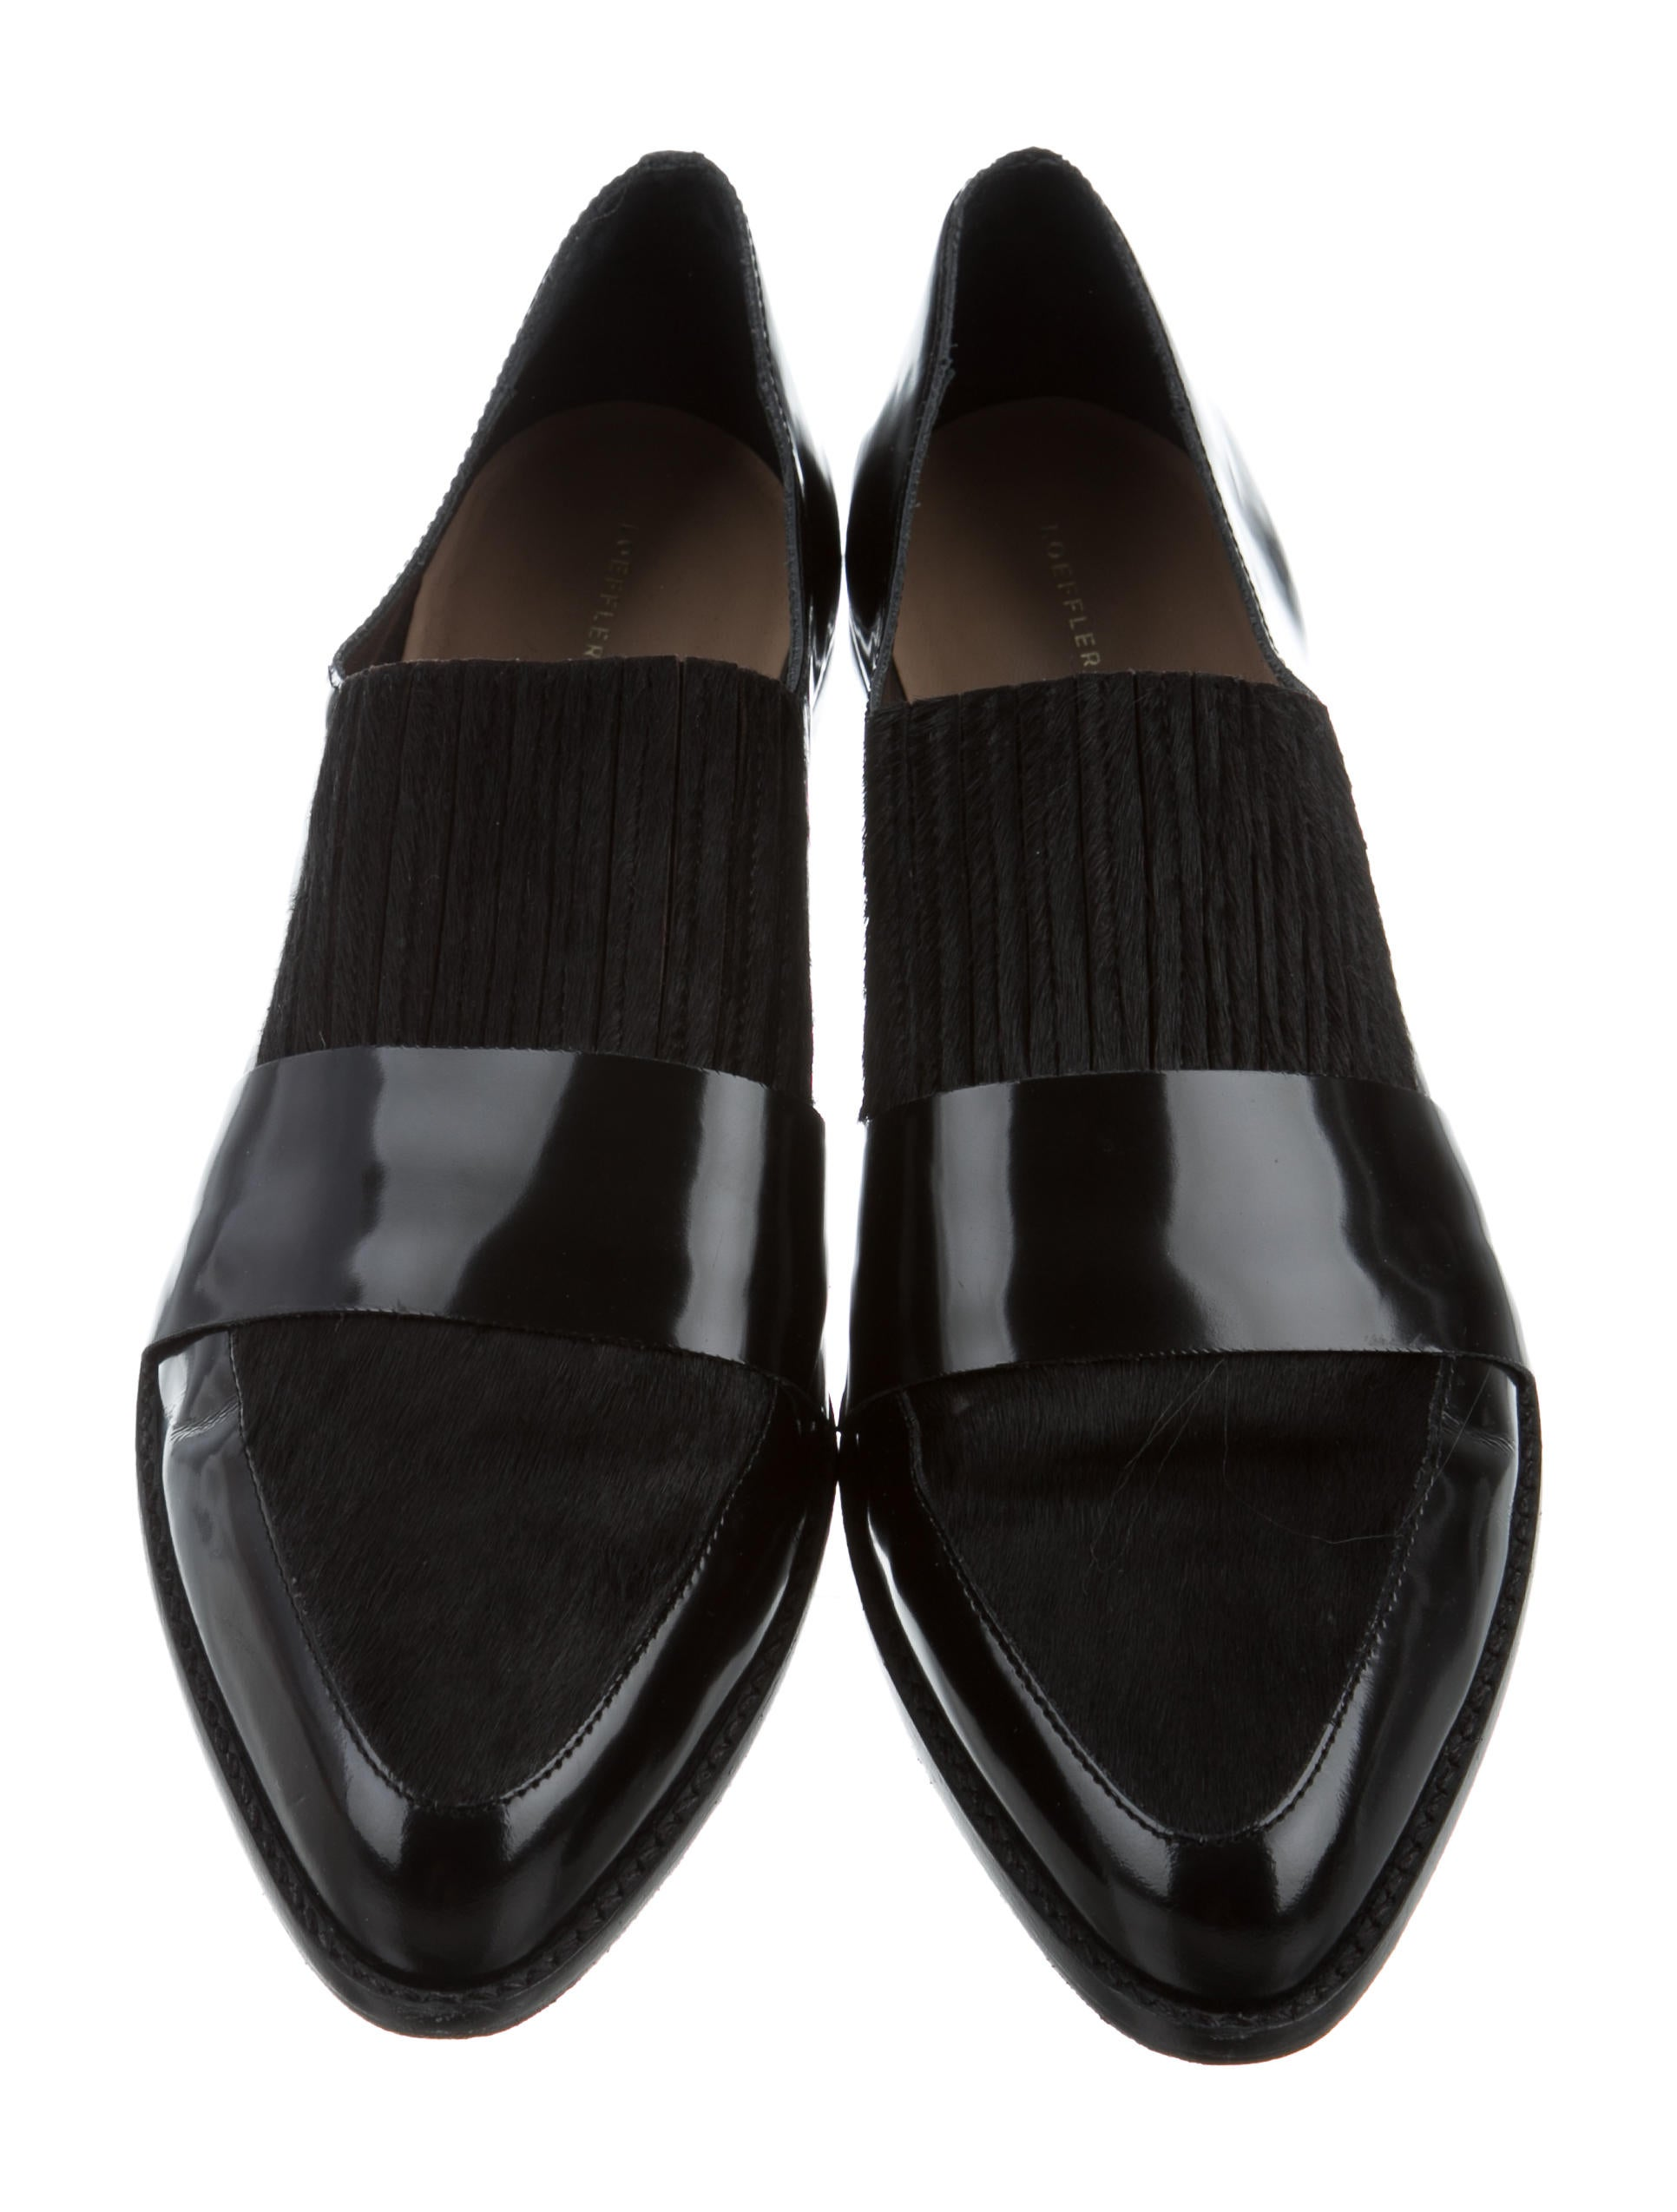 outlet shop for Loeffler Randall Rosa Ponyhair Loafers discount shop Iyv8hmOJhC